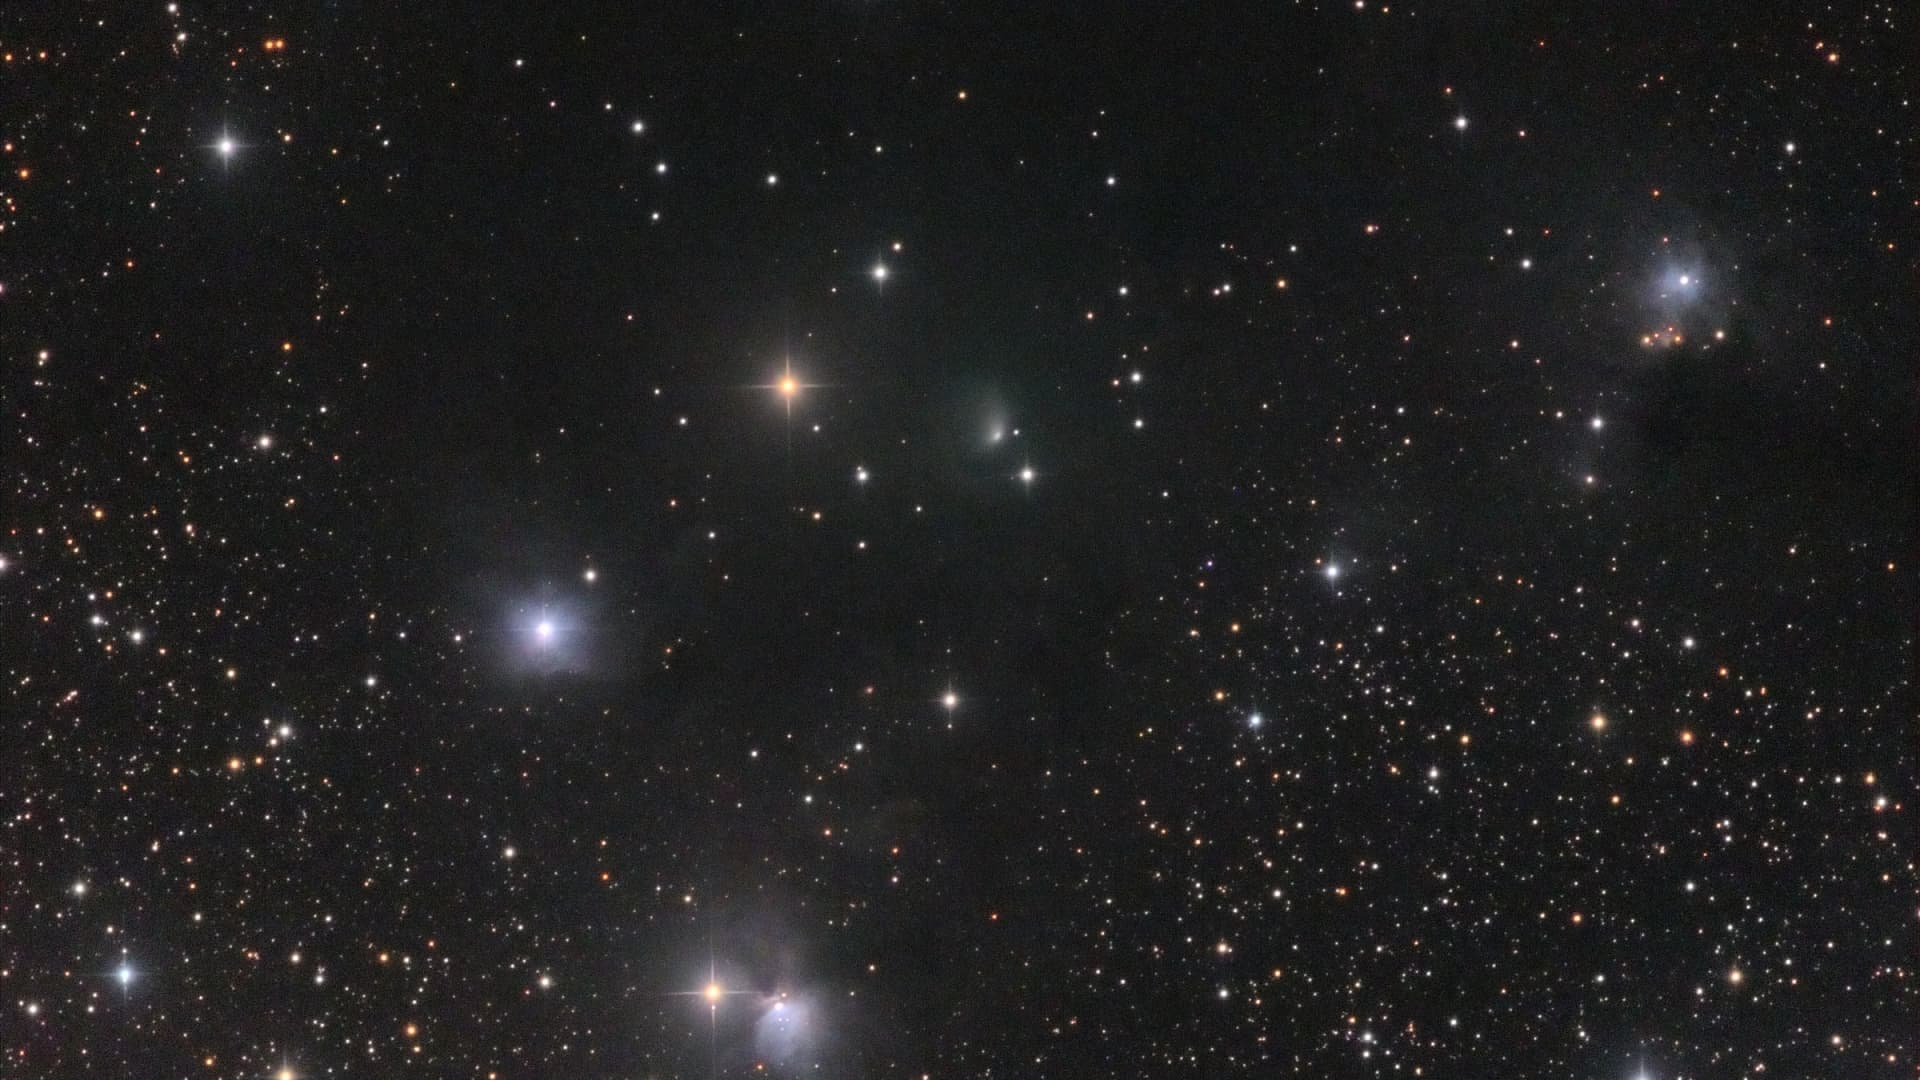 Comet C/2021 A2 NEOWISE